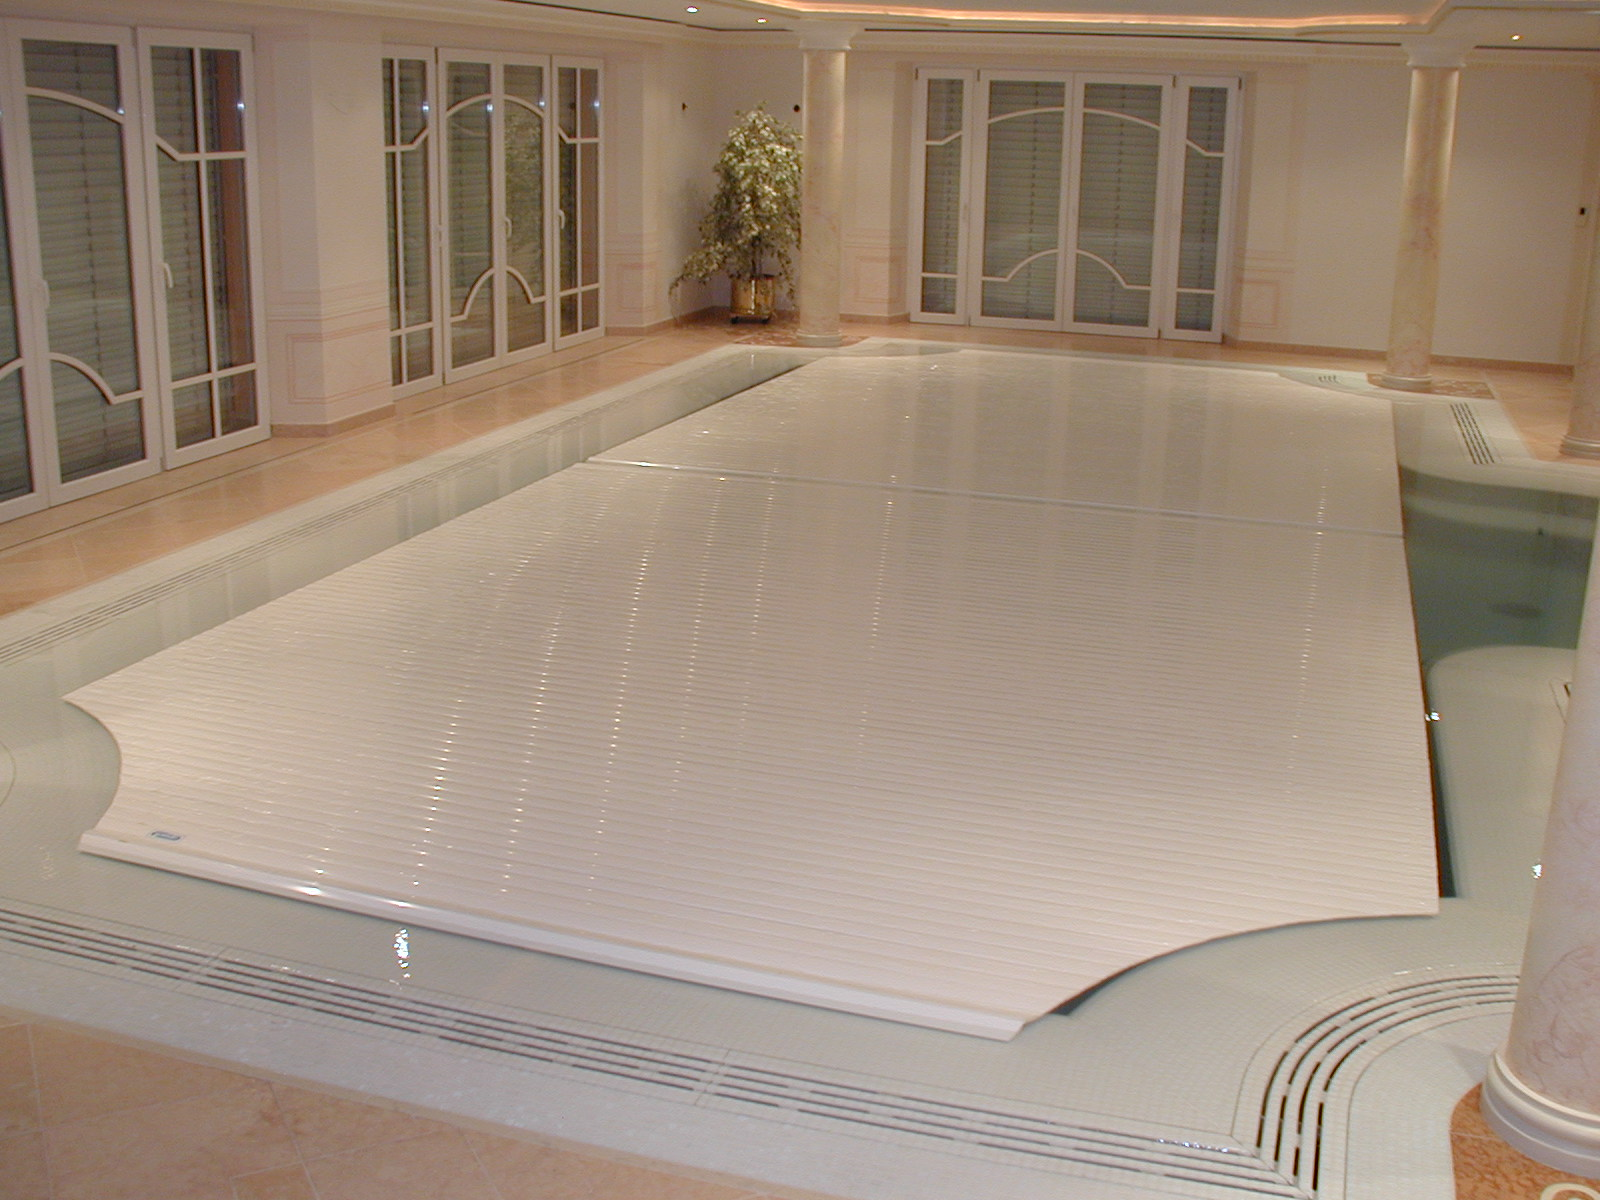 Indoor Automatic Pool Cover Covertech Couture Outdoor